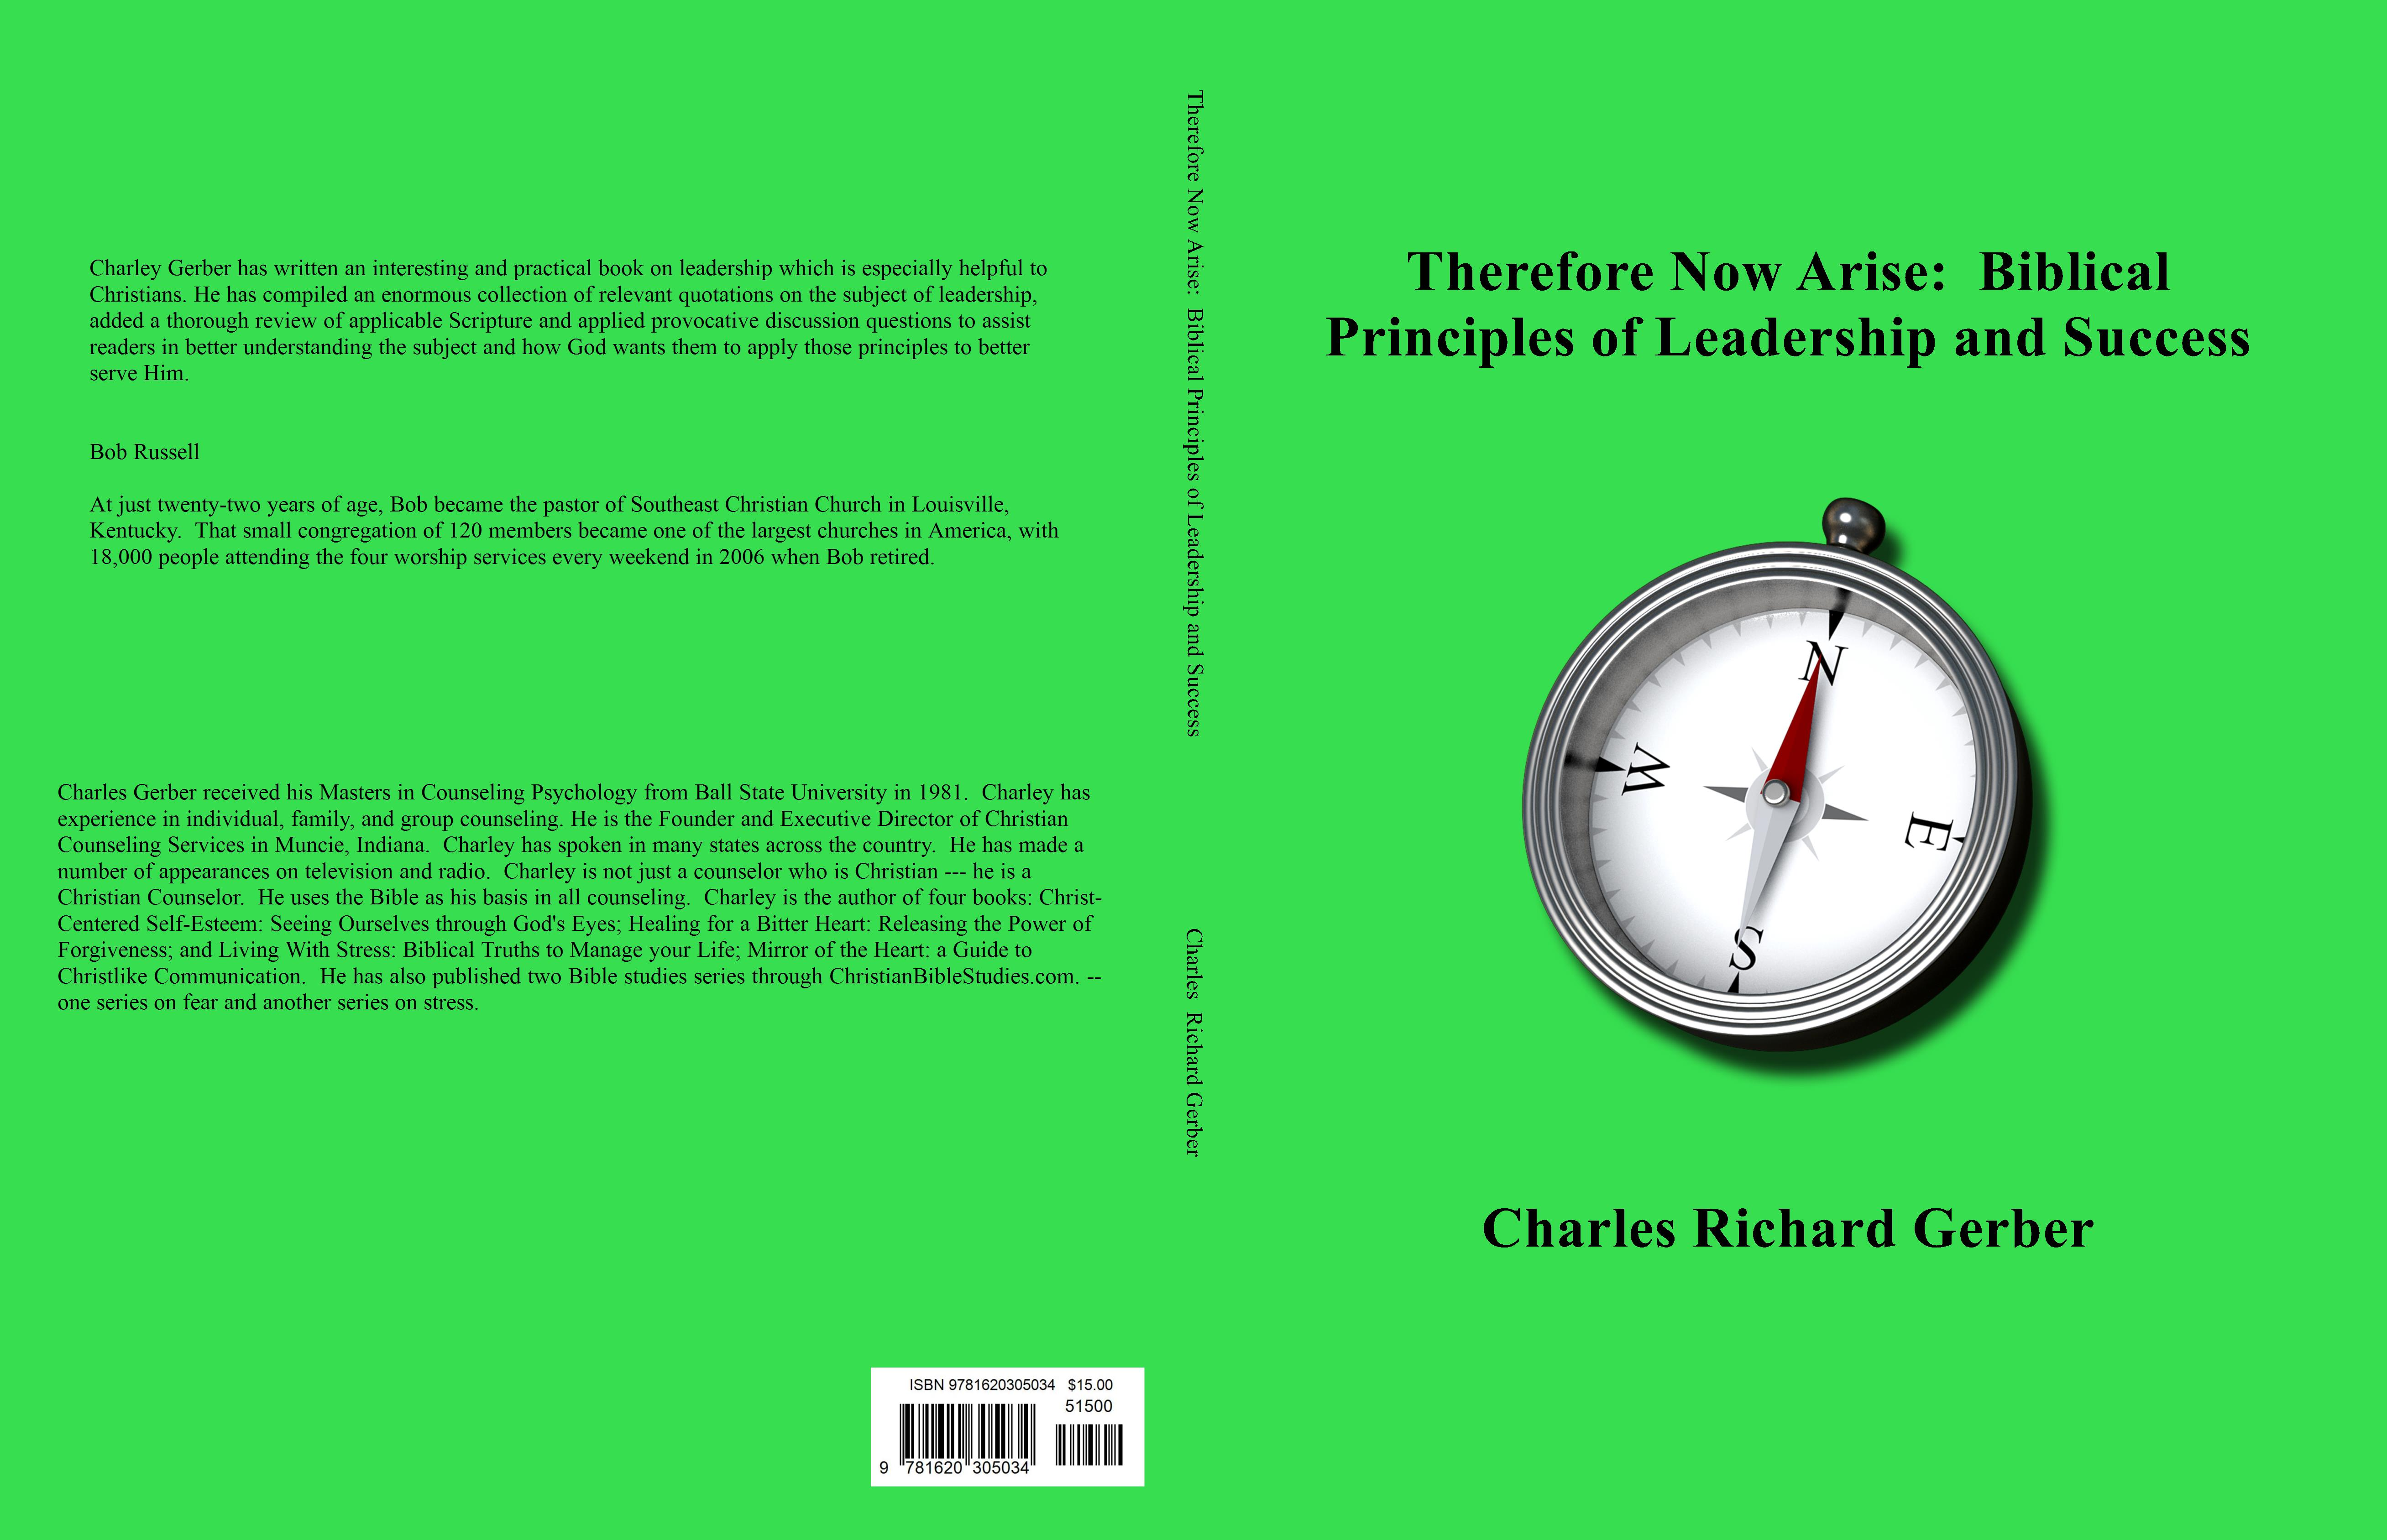 Therefore Now Arise: Biblical Principles of Leadership and Success cover image